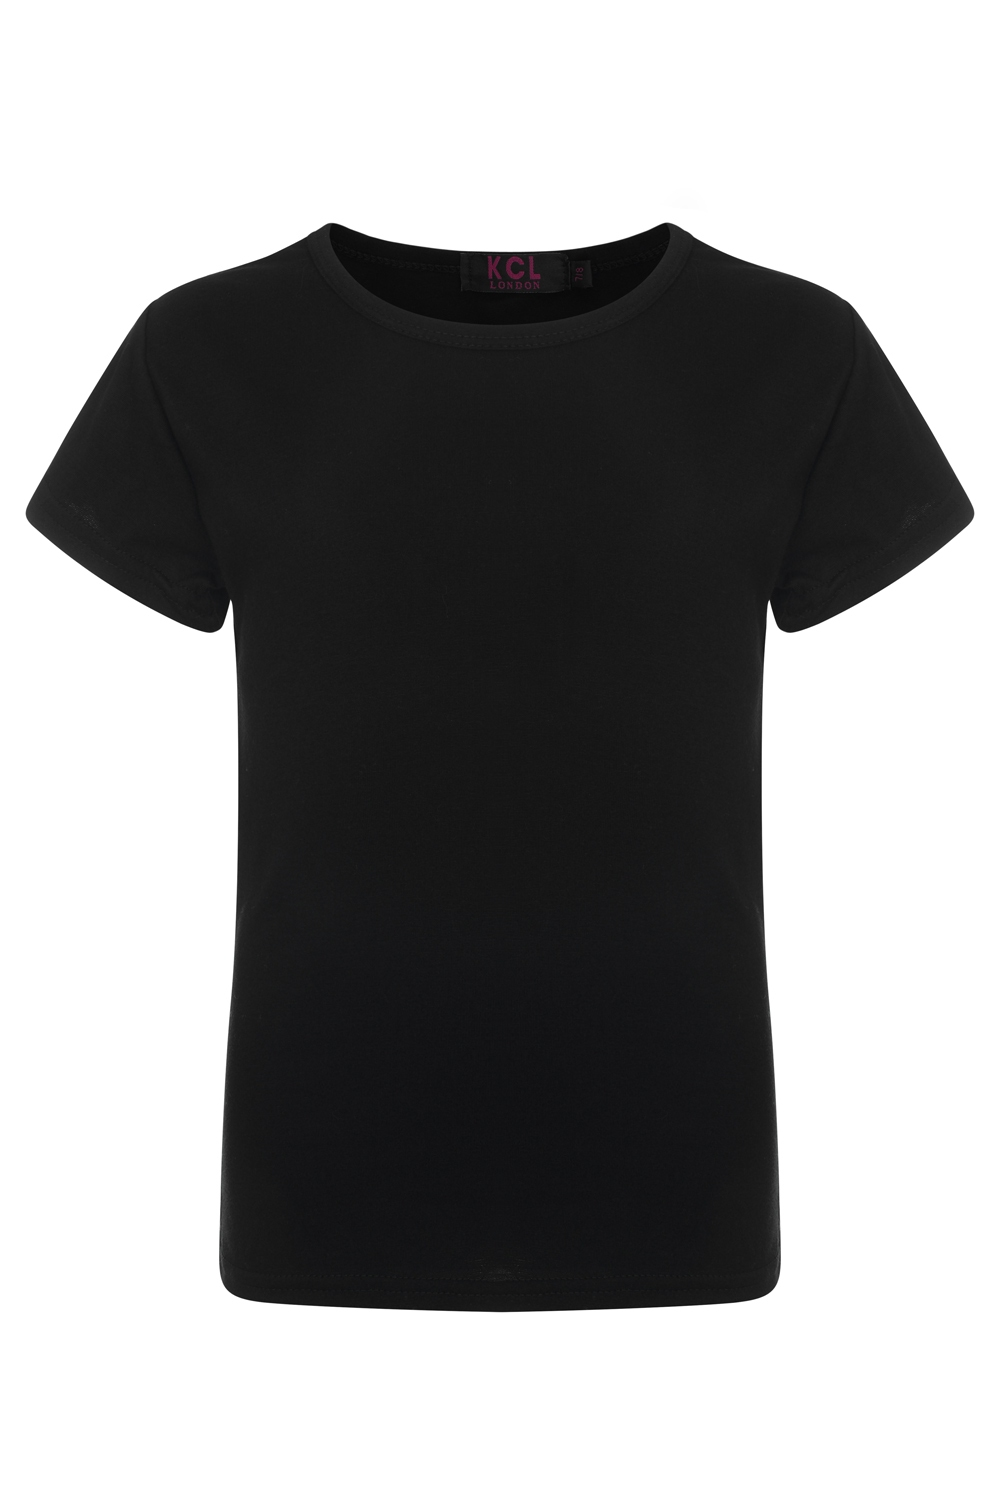 Plain black tee shirt clipart best for T shirt plain black